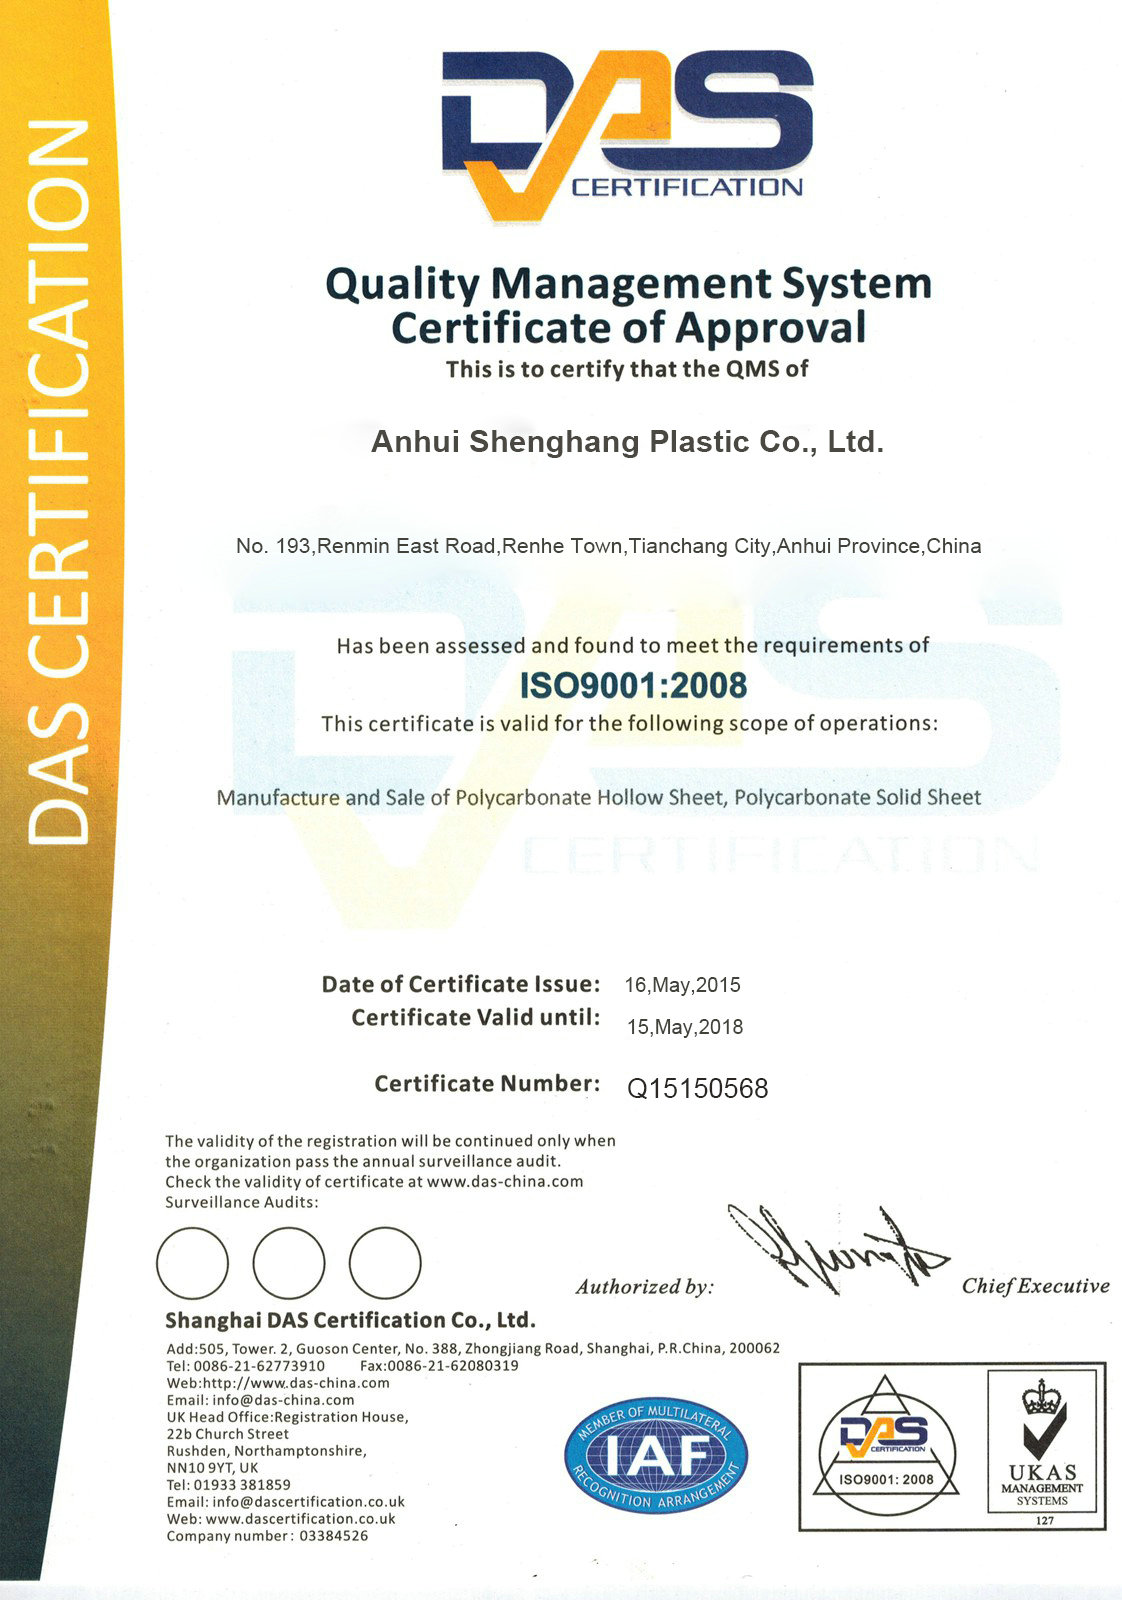 ISO9001:2008 for Shenghang Plastic